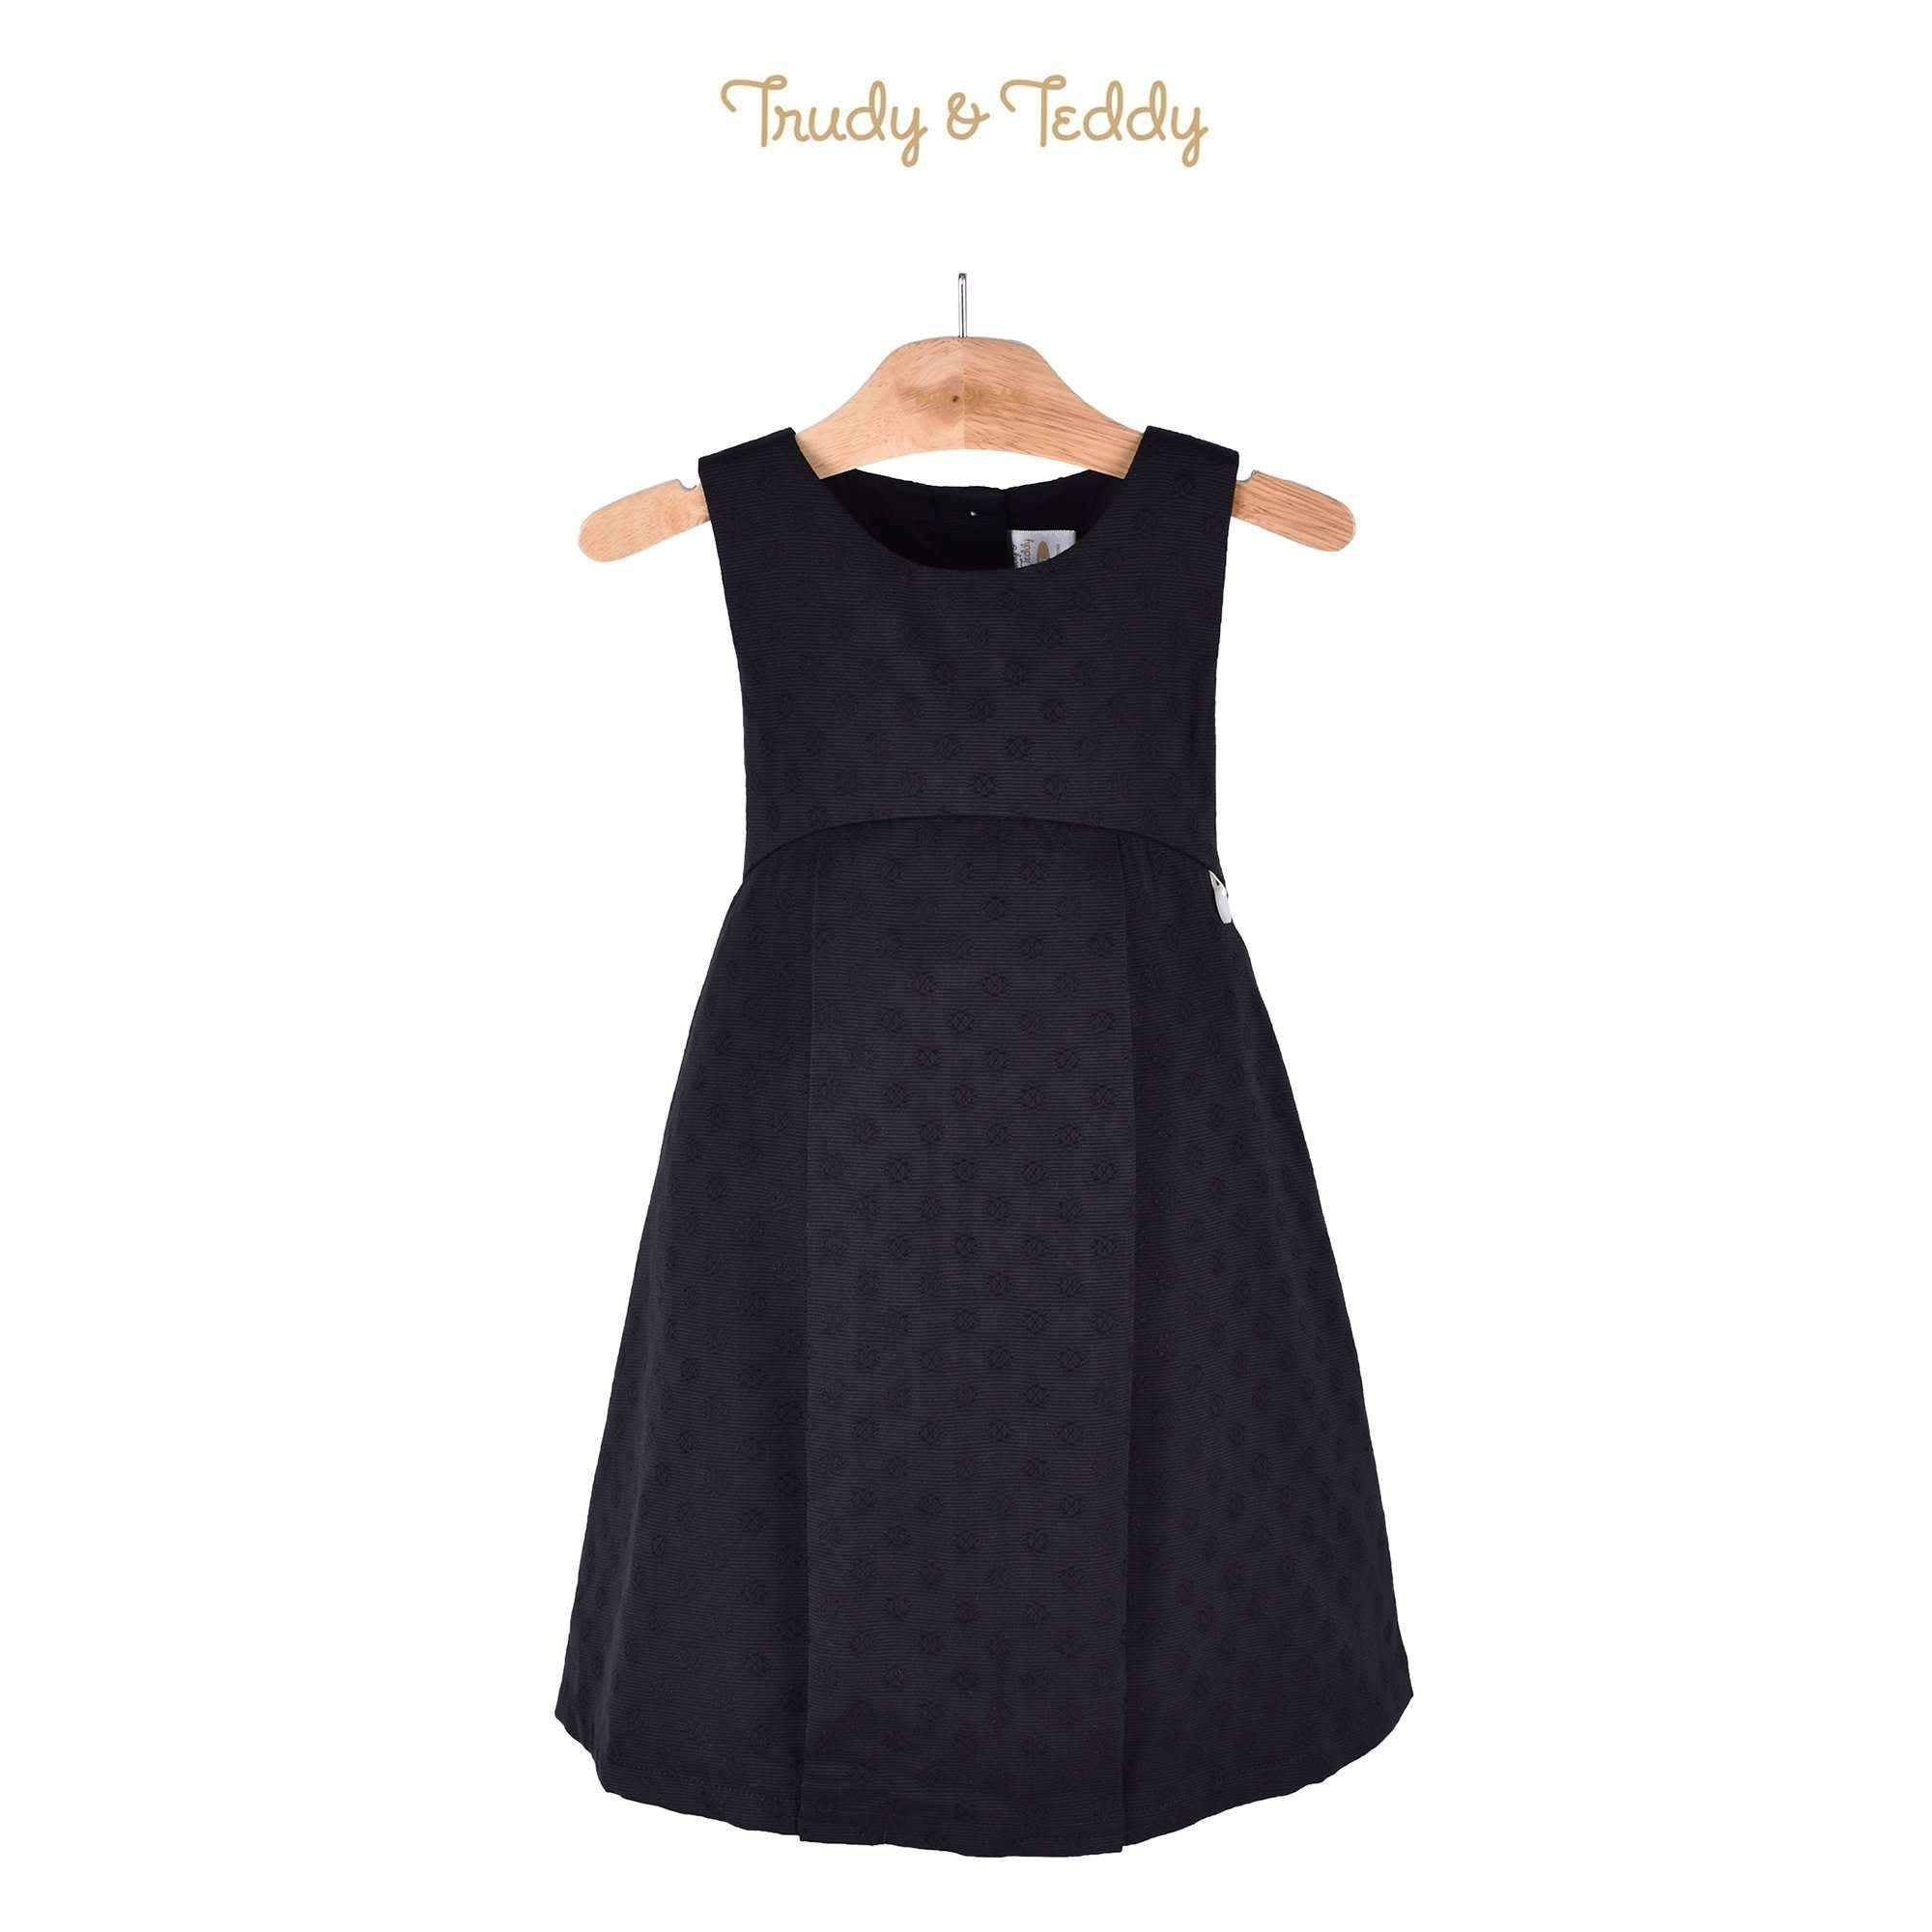 Trudy & Teddy Toddler Girl Short Sleeve Dress Dress 815127-311 : Buy Trudy & Teddy online at CMG.MY